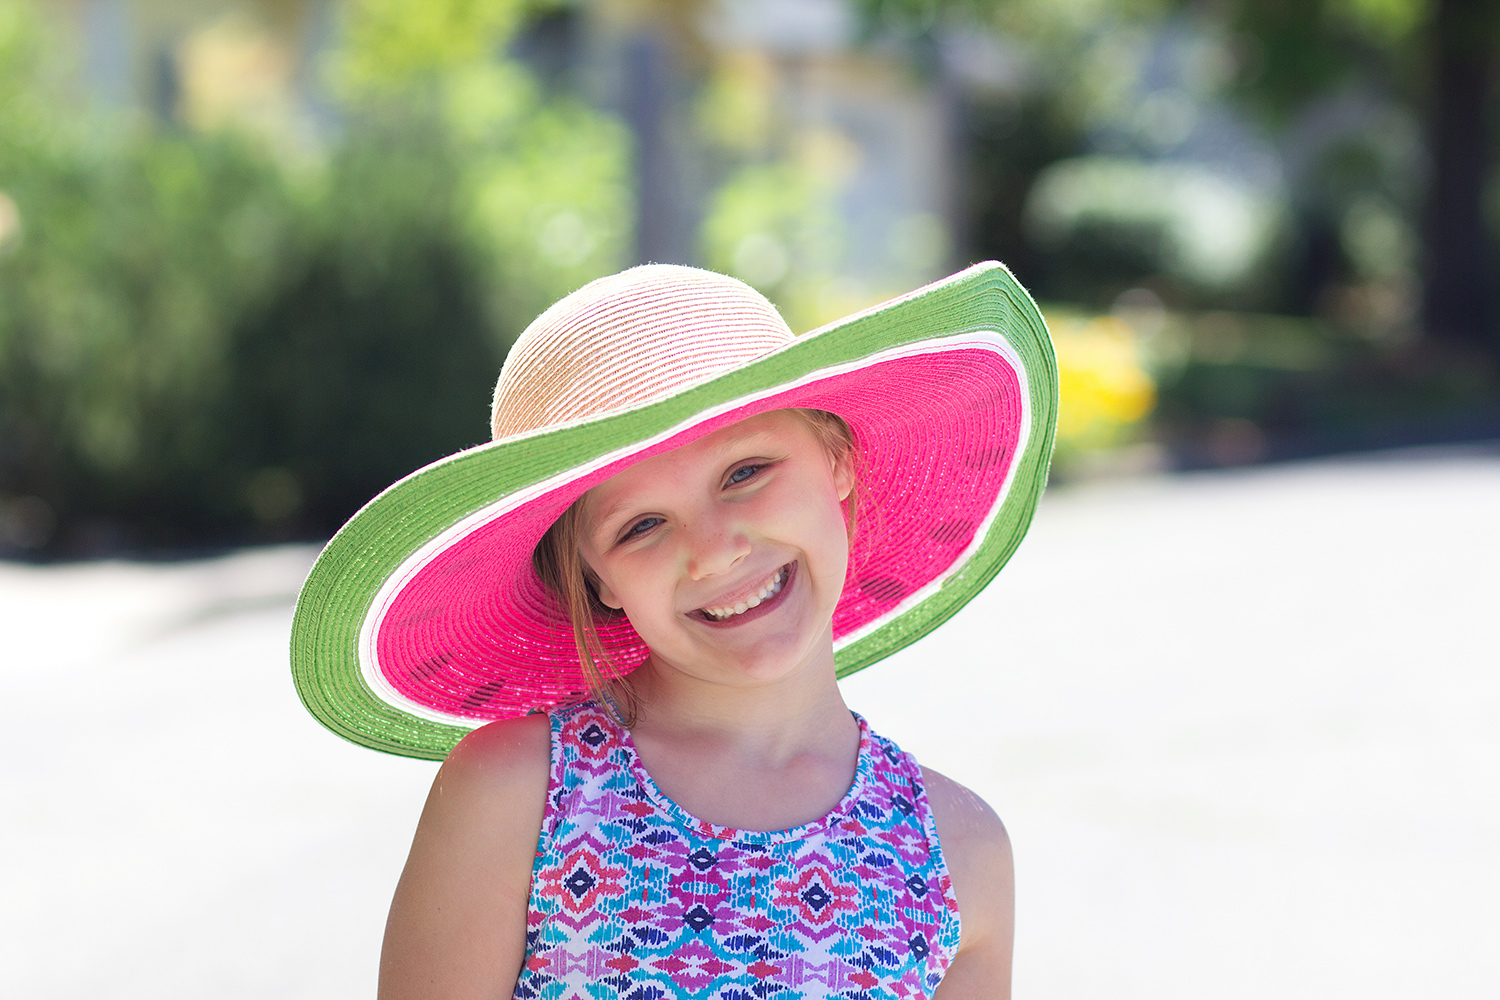 girl in a watermelon hat - 3 Tips For Photographing Kids in Harsh Light